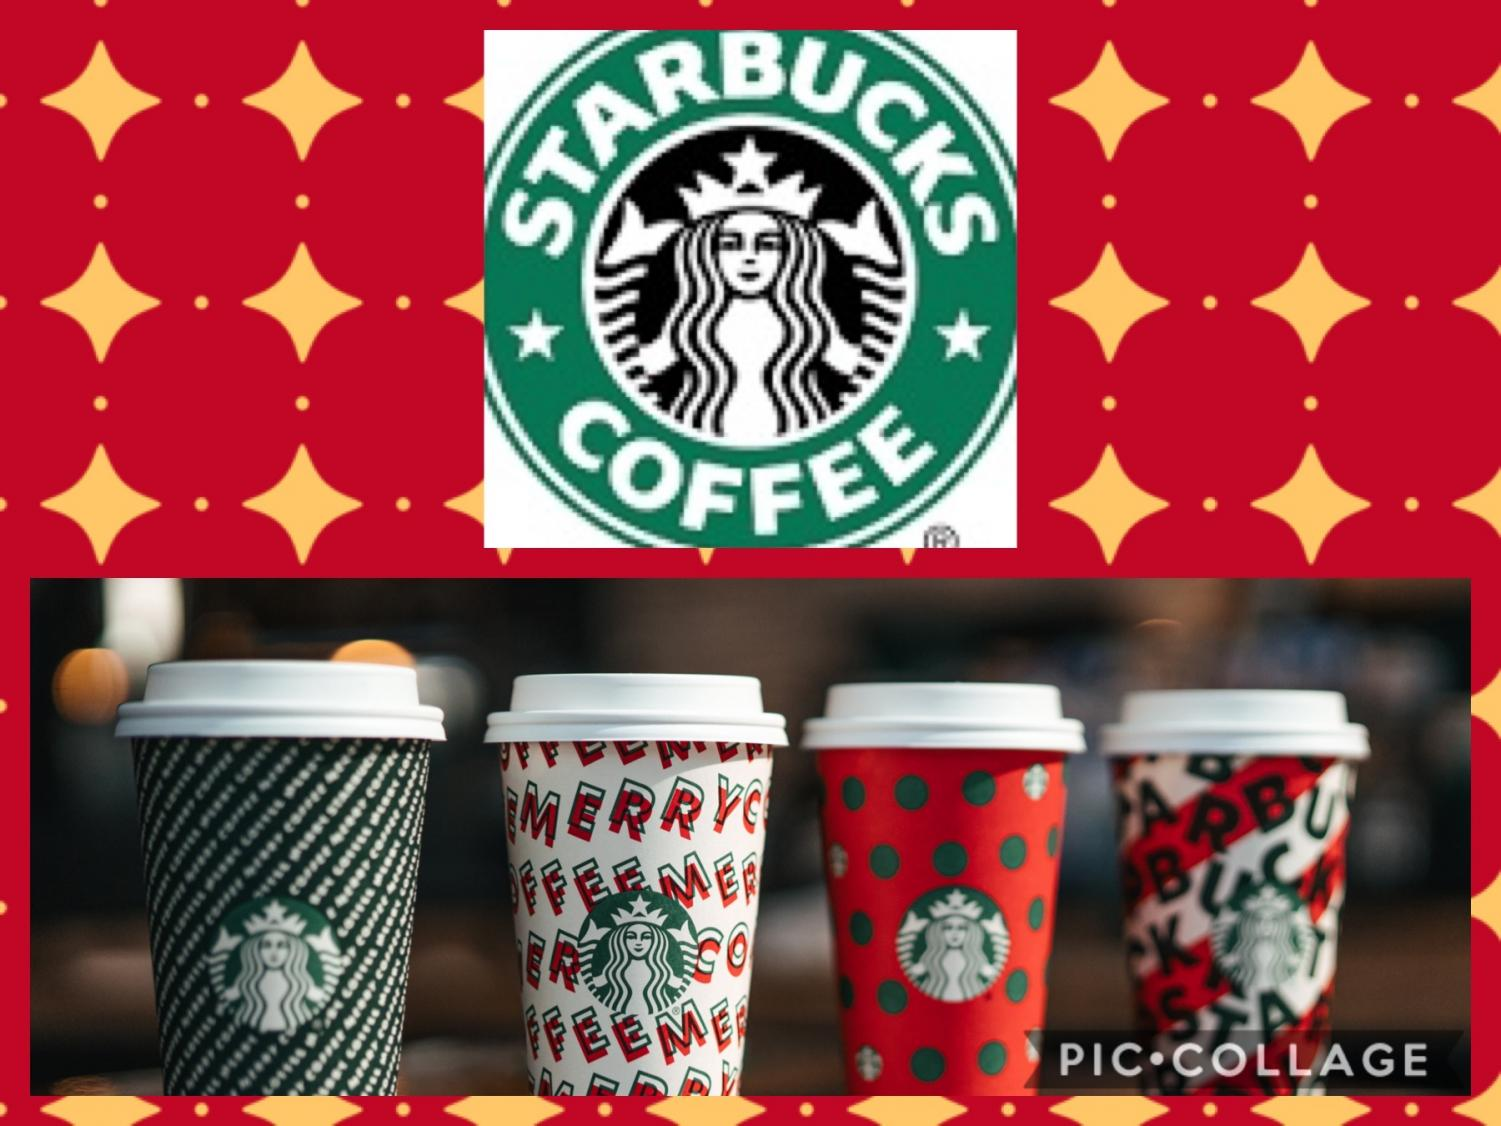 Throughout the seasons, Starbucks adds new drinks to the menu. These drinks appeal to customers as it fits the season. Customers love the pumpkin spice latte in the fall.